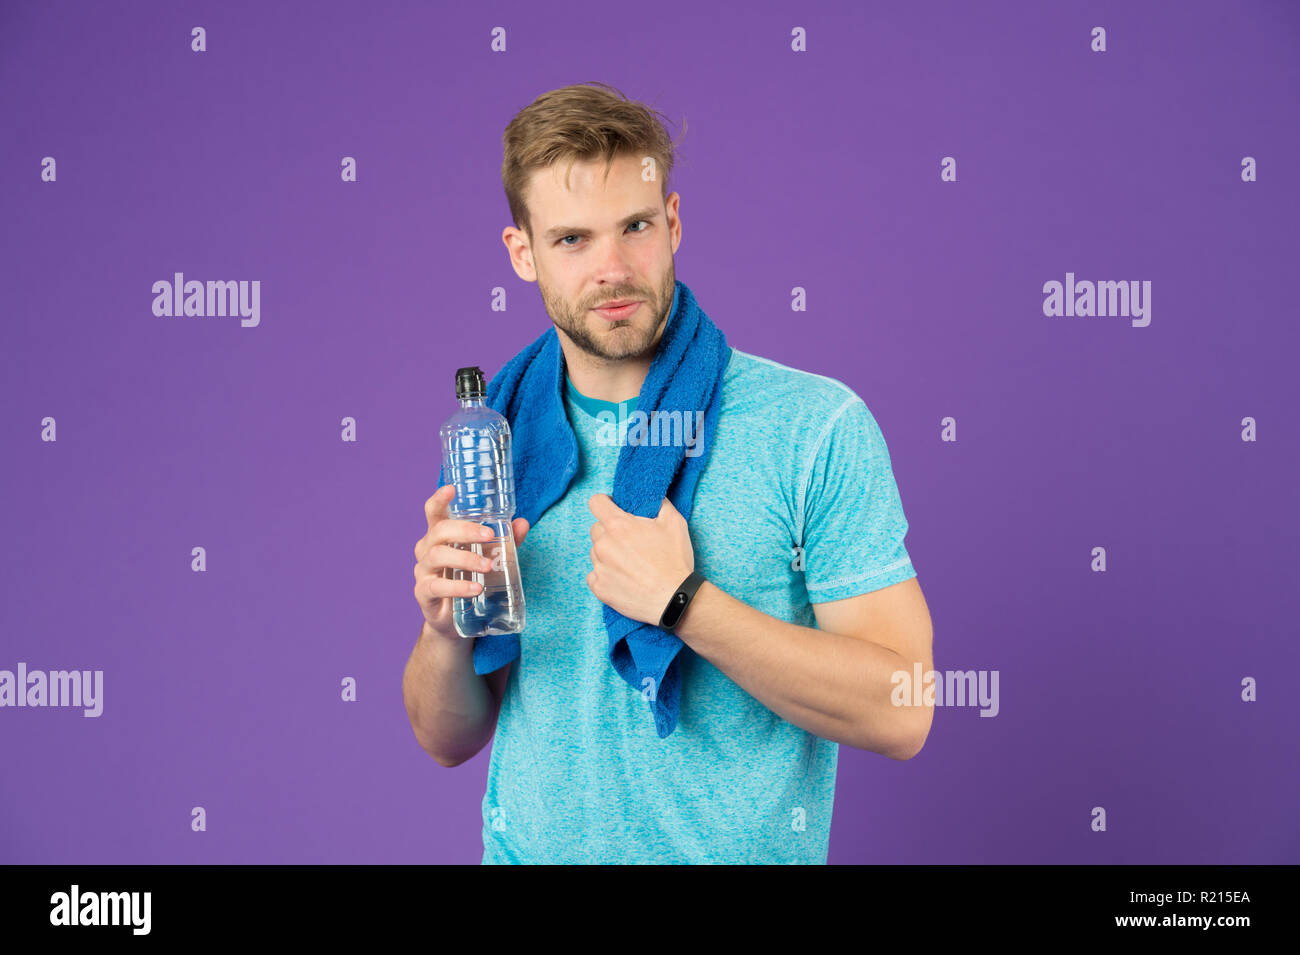 Stay hydrated. Drink some water. Man athlete with towel on shoulders holds water bottle. Man athlete sport clothes refreshing. Sport and healthy lifestyle concept. Athlete drink water after training. - Stock Image